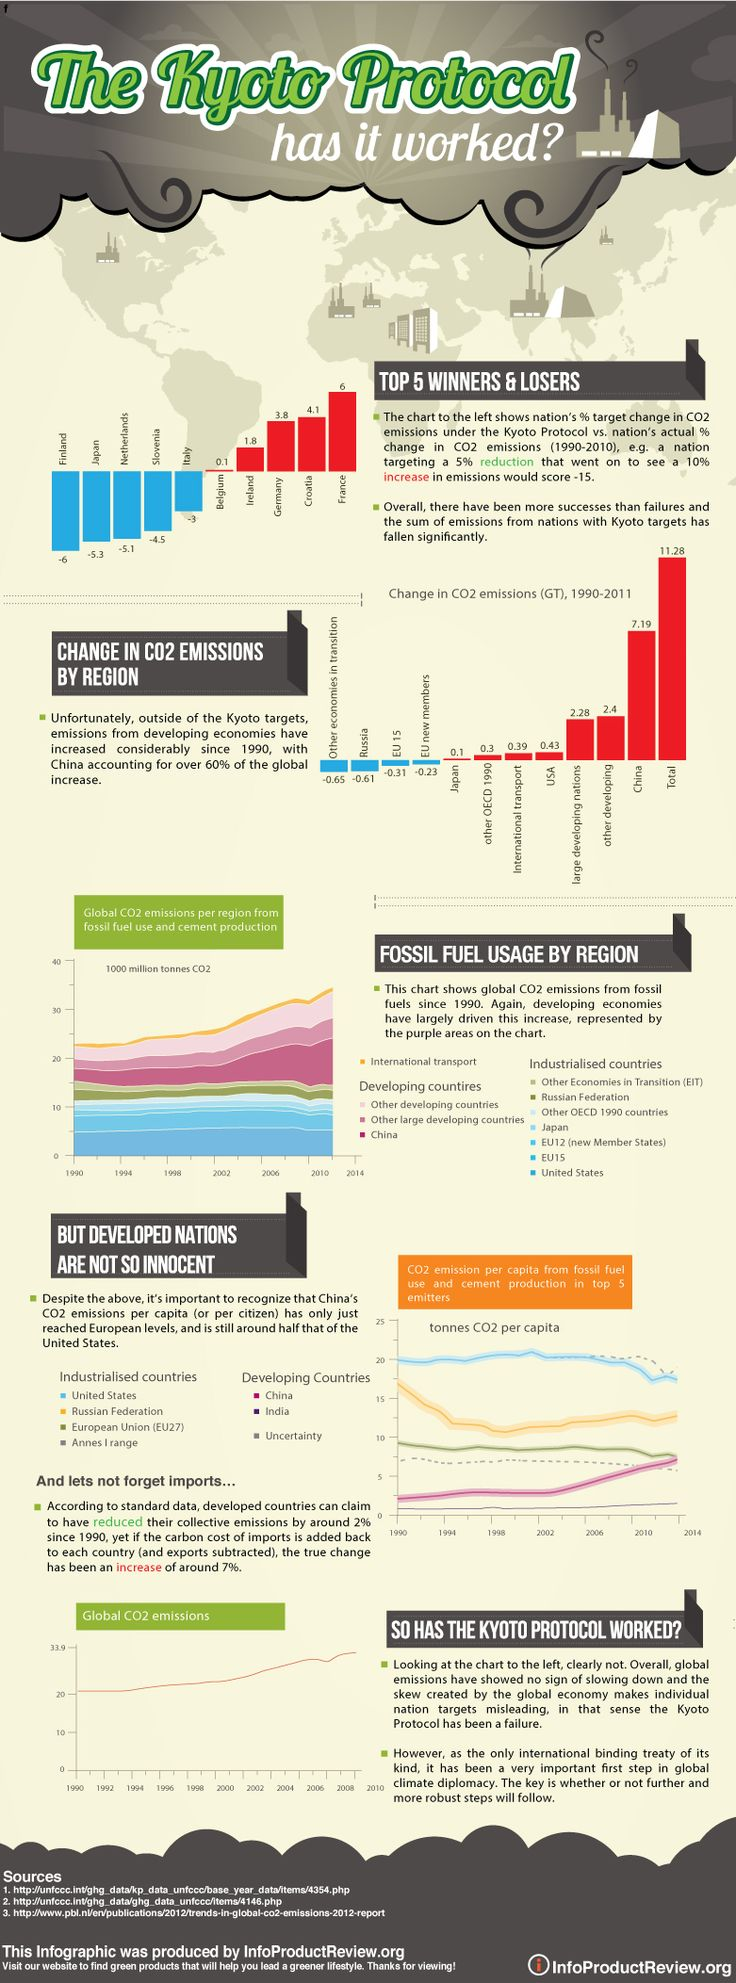 Has the Kyoto Protocol Worked? [Infographic]